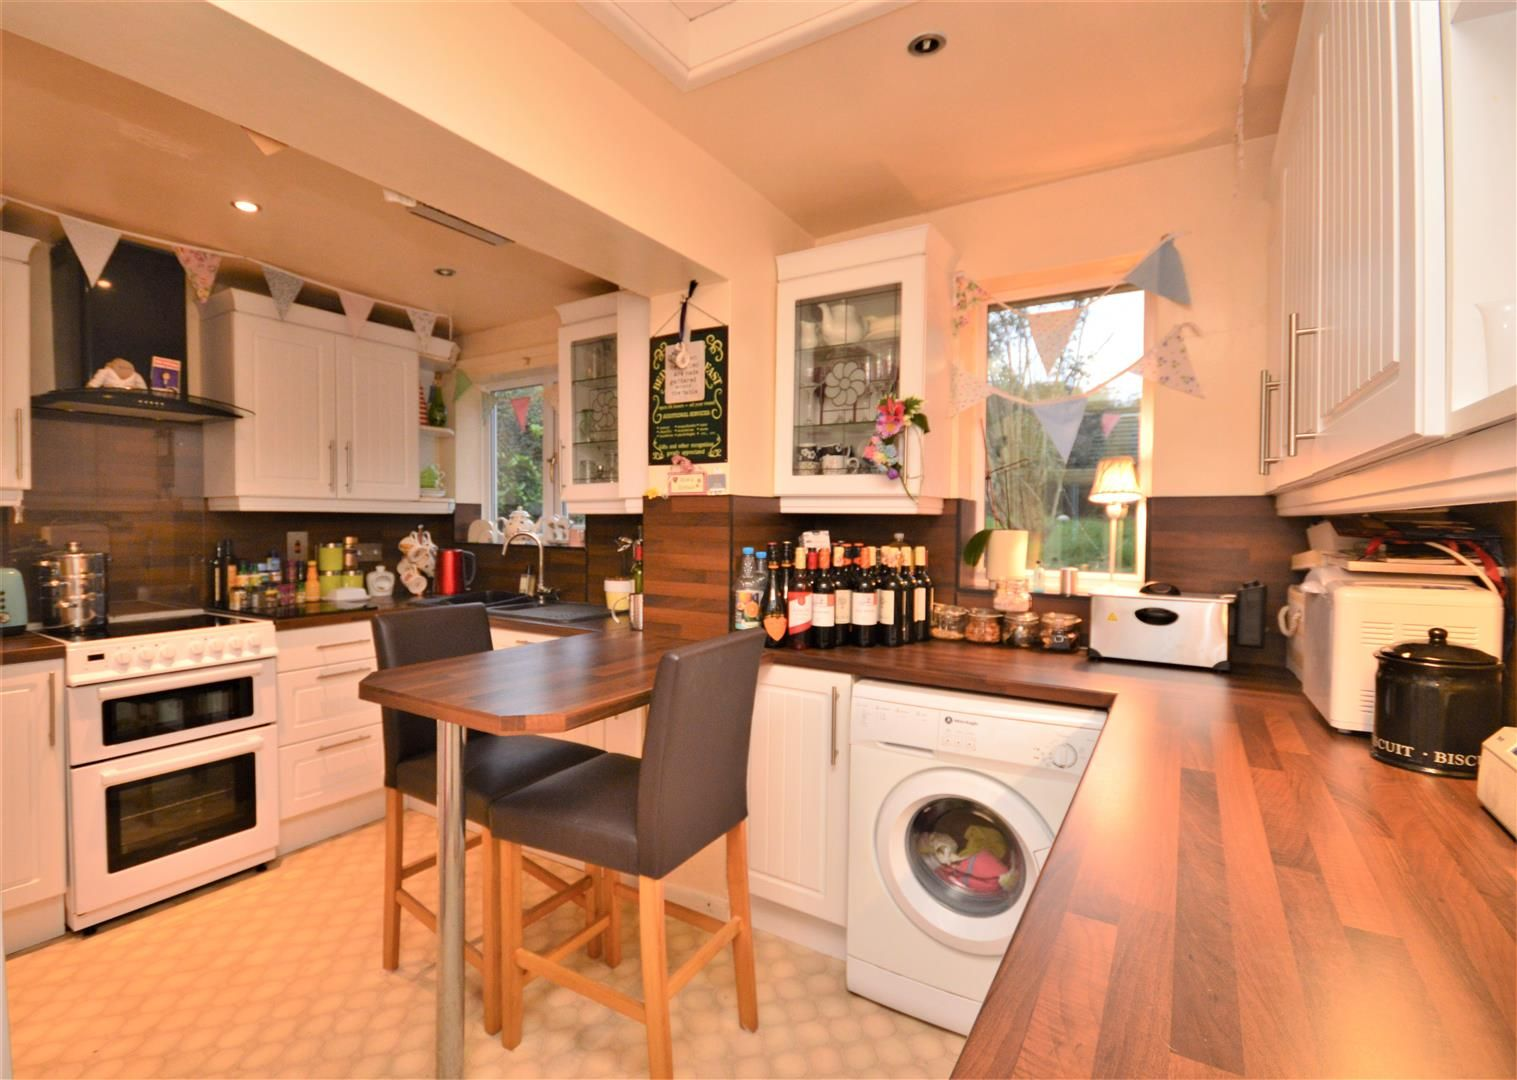 3 bed semi-detached for sale in Much Birch 4